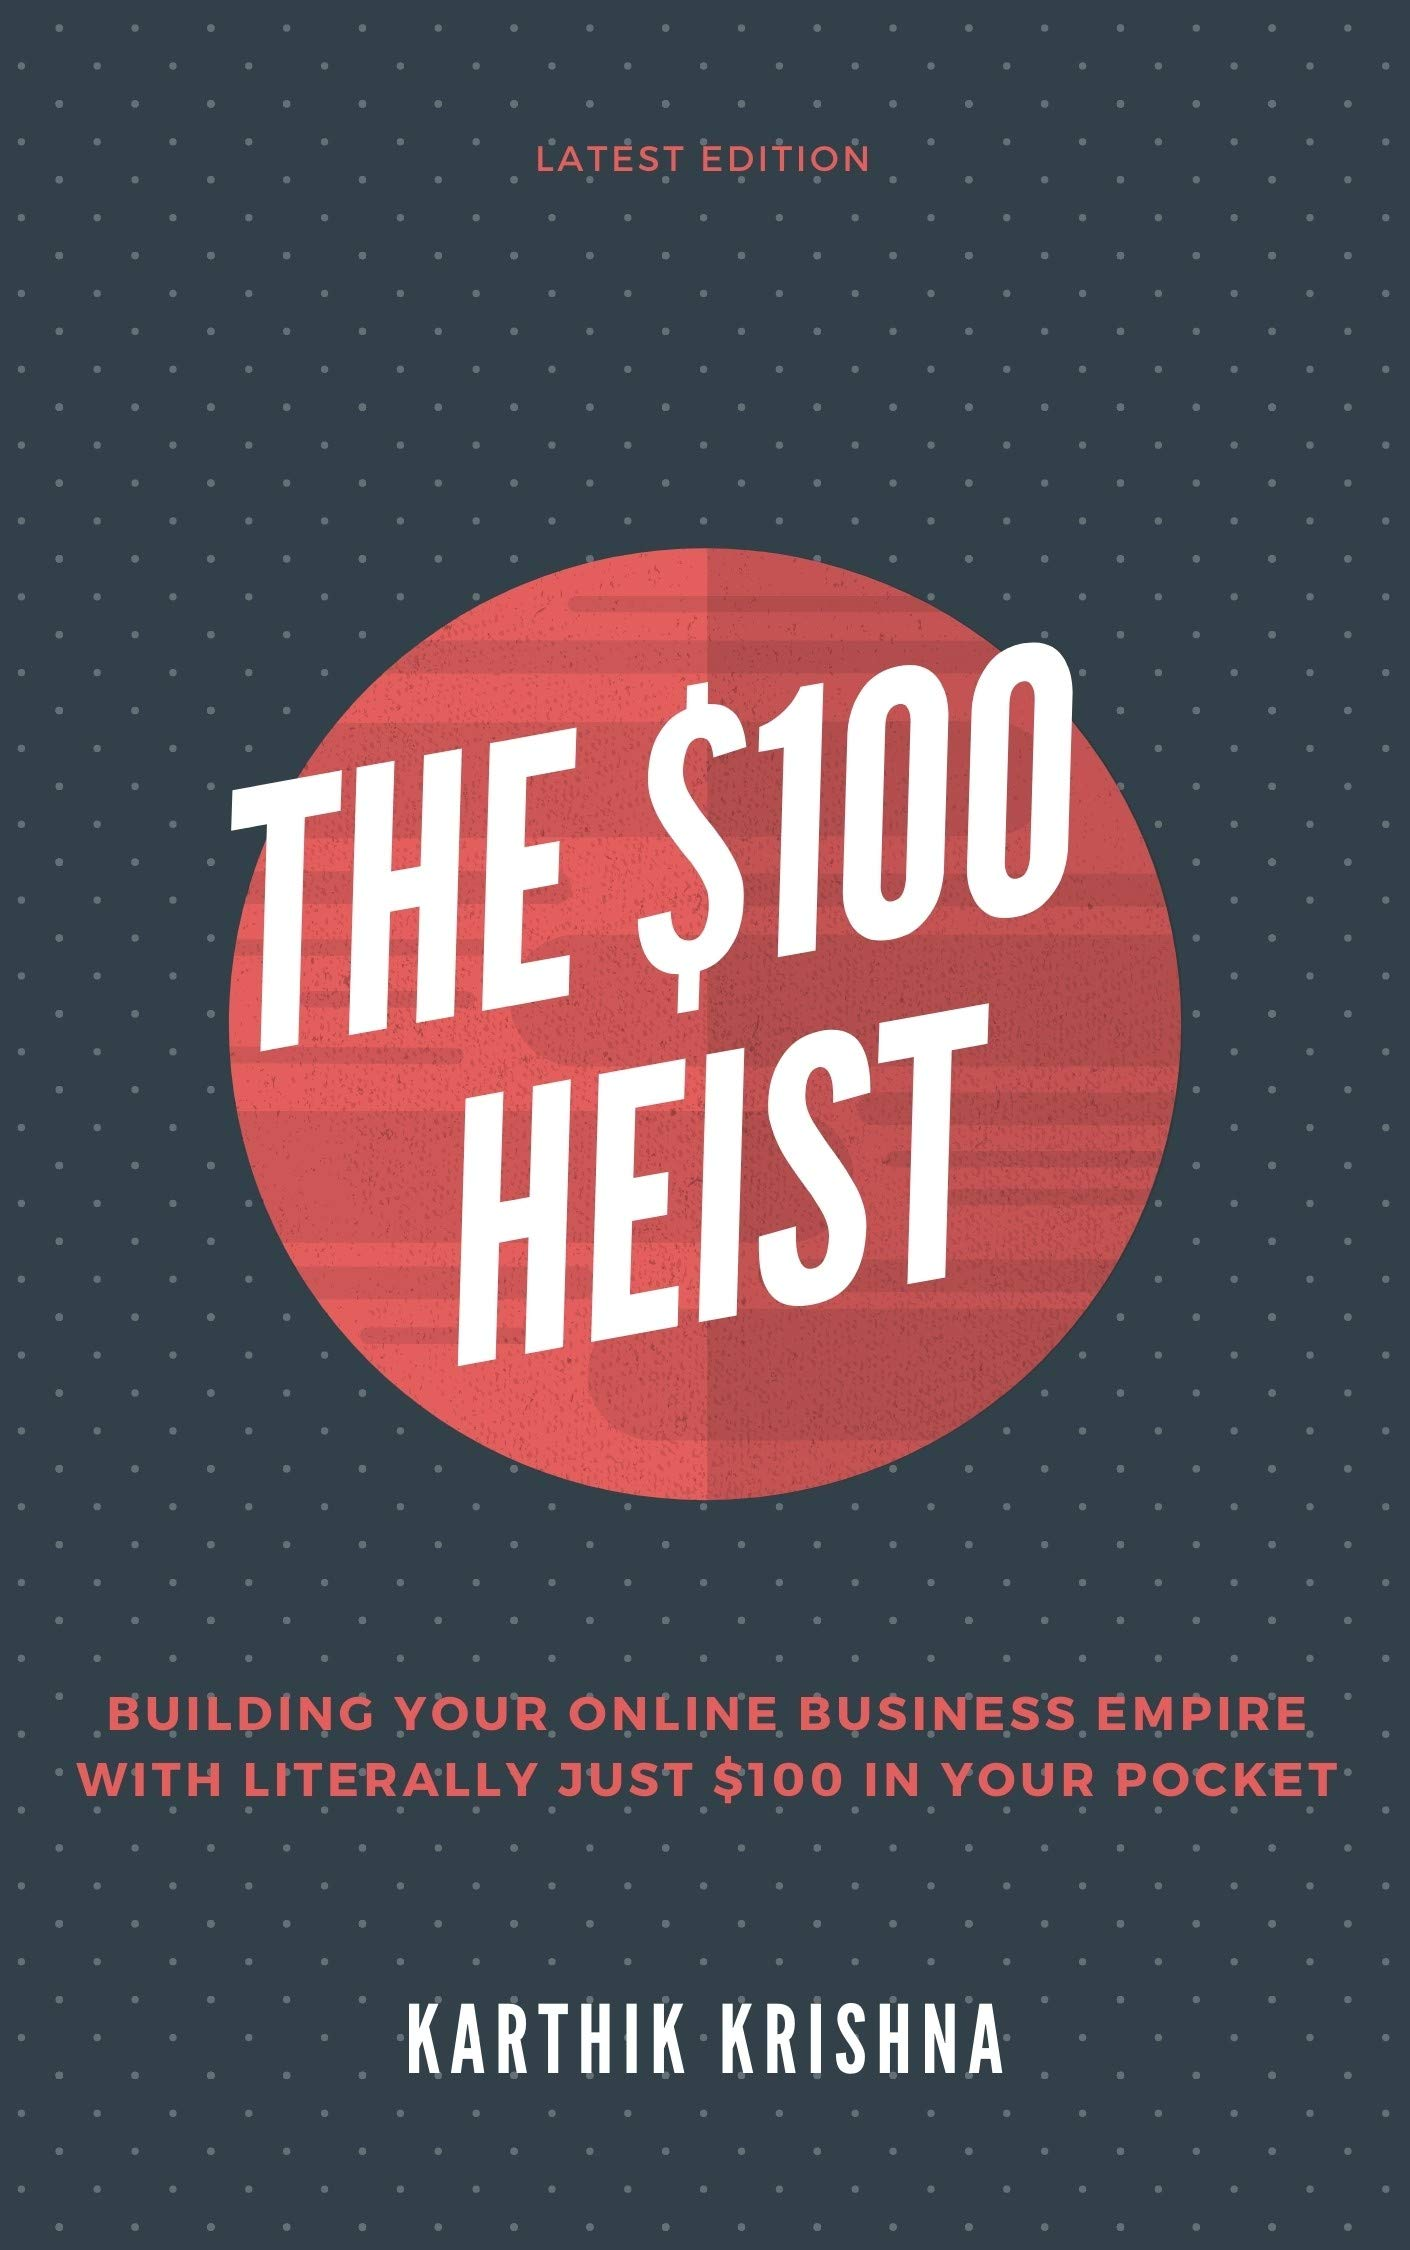 The $100 Heist: Building your Online Business Empire with just $100 in your pocket